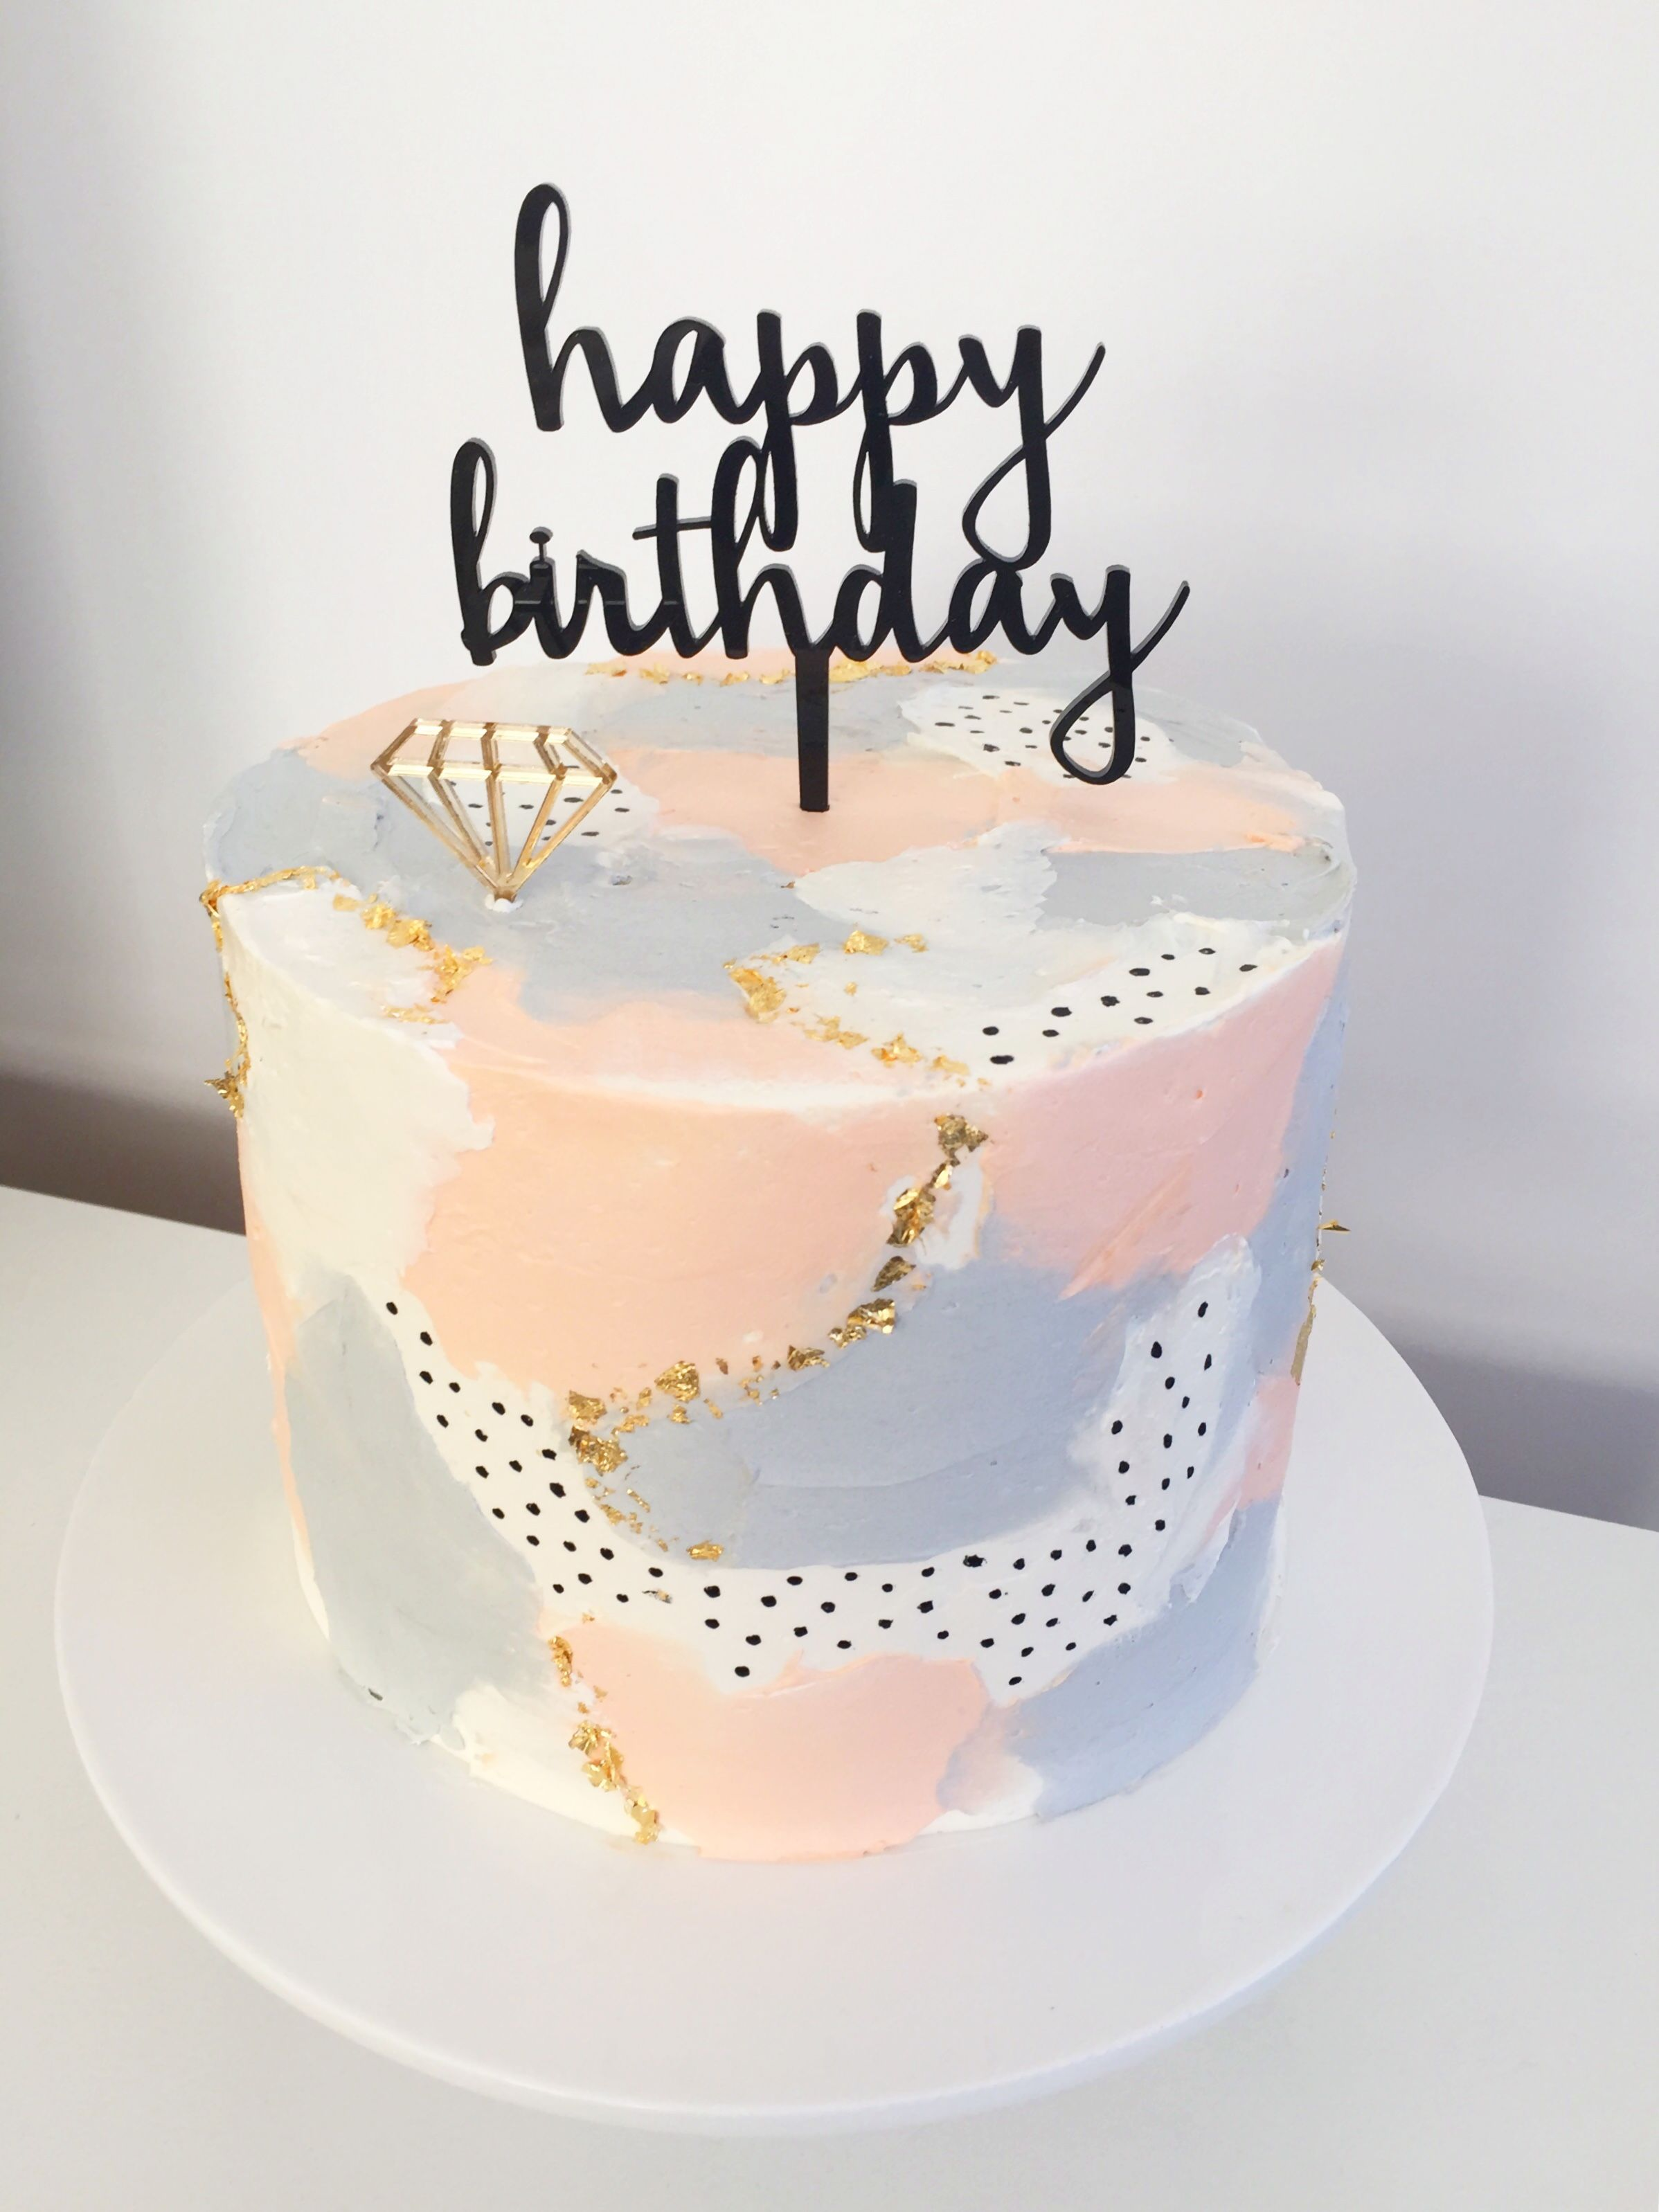 Love This Cake Design Inspiration From Dessertstomach Cake Topper By Sweet Savanna Cookies On E Birthday Cakes For Teens 13 Birthday Cake Cute Birthday Cakes